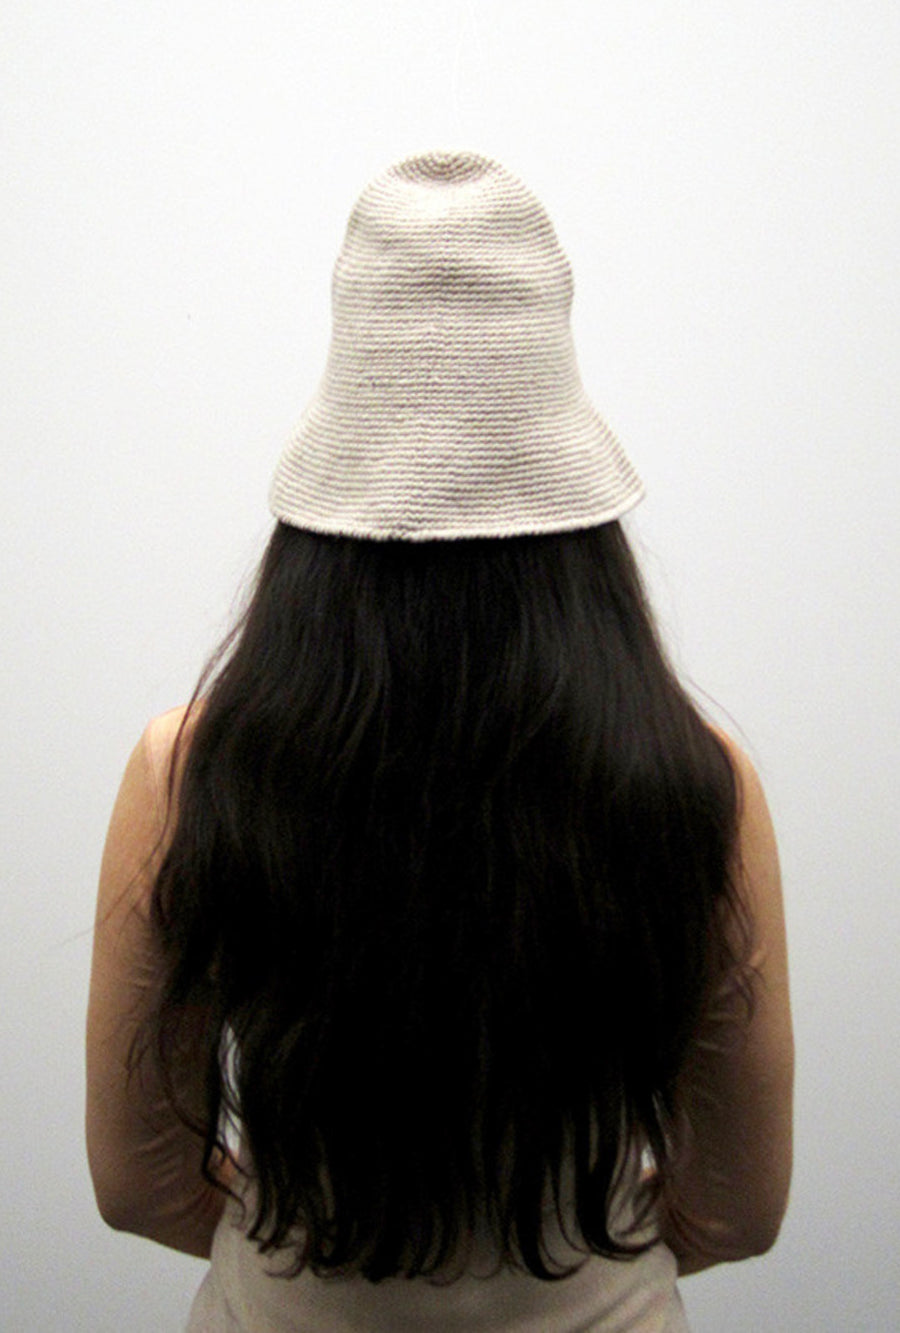 Bell Hat